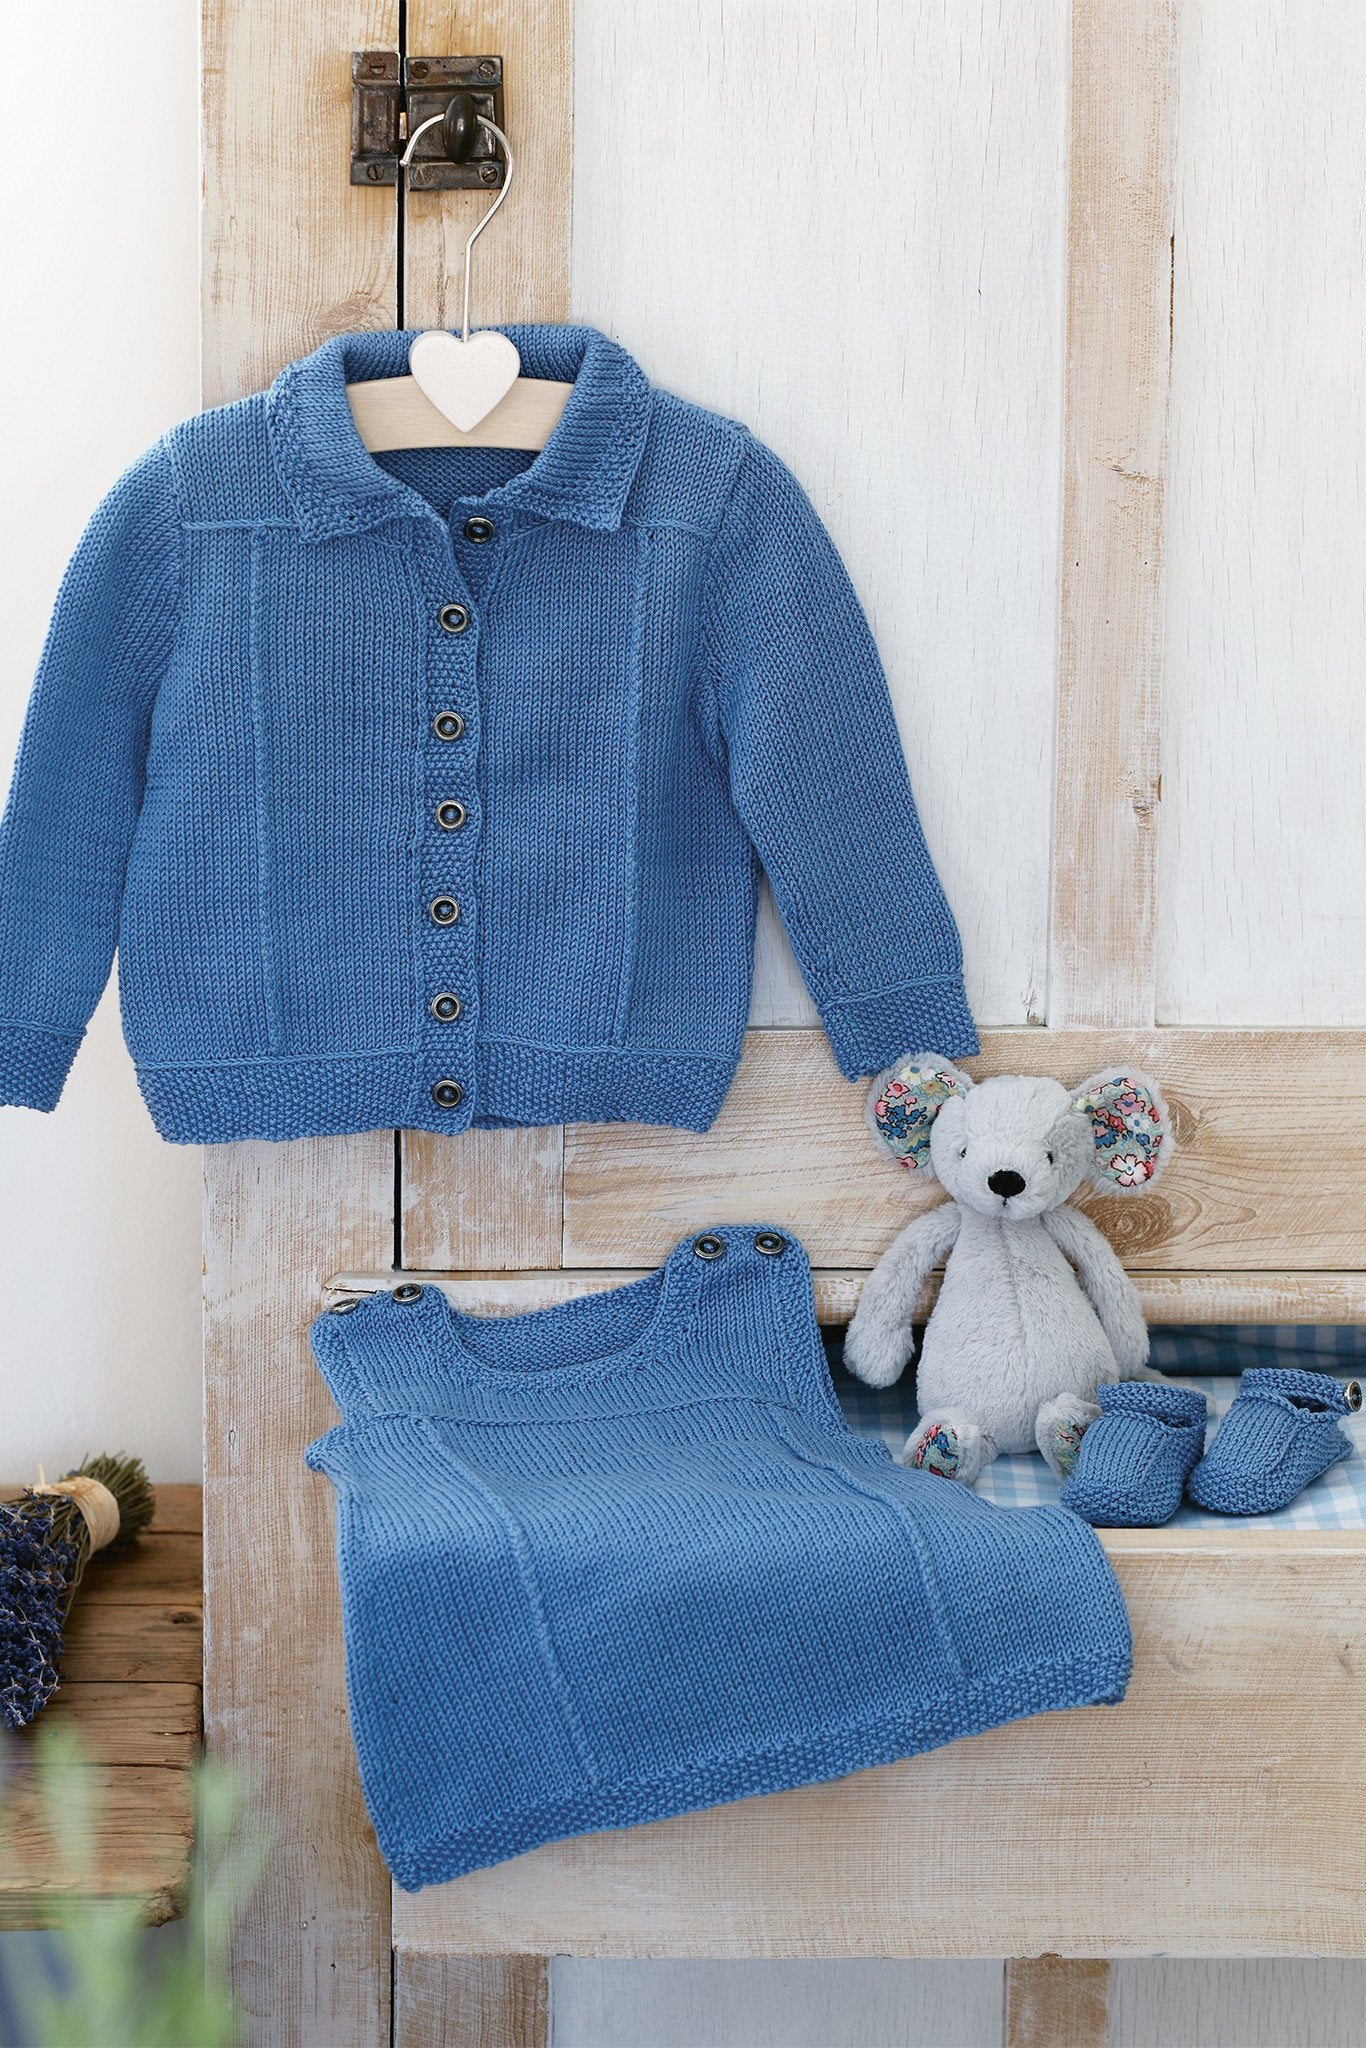 Baby Girls Denim Jacket Dress & Shoe Set Knitting Pattern – The